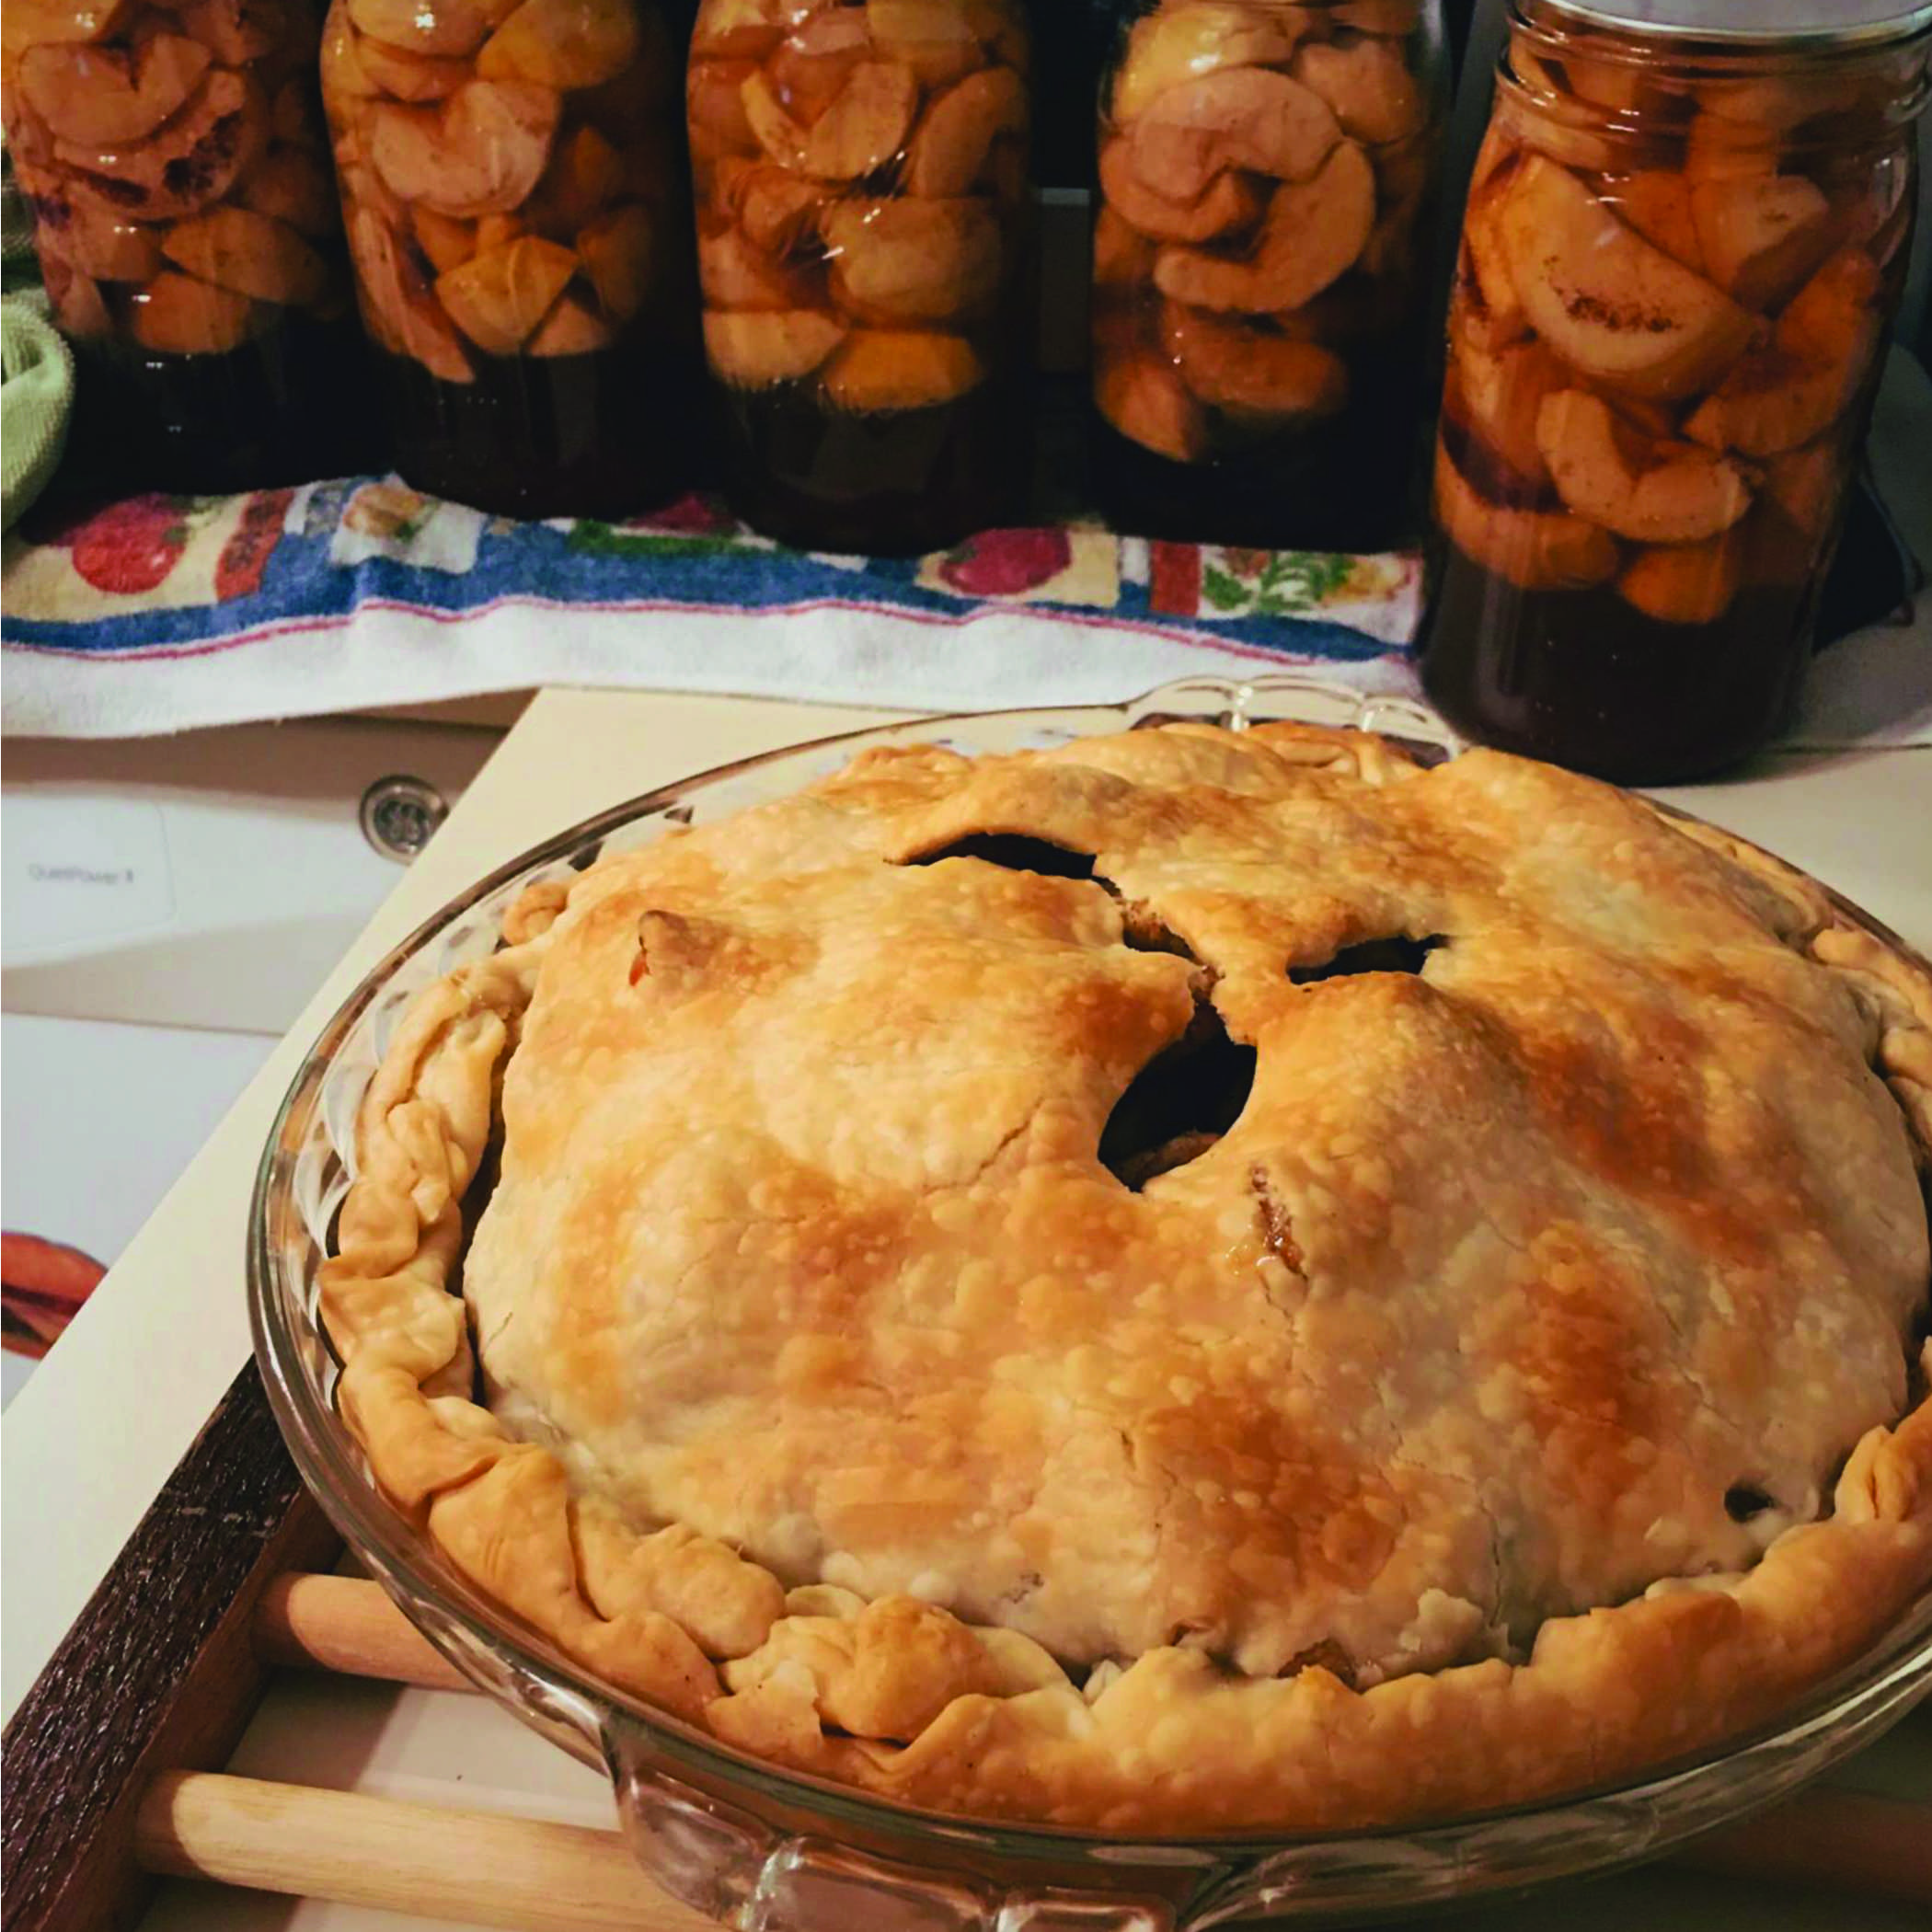 an apple pie and jars of apple slices cooling on a counter top